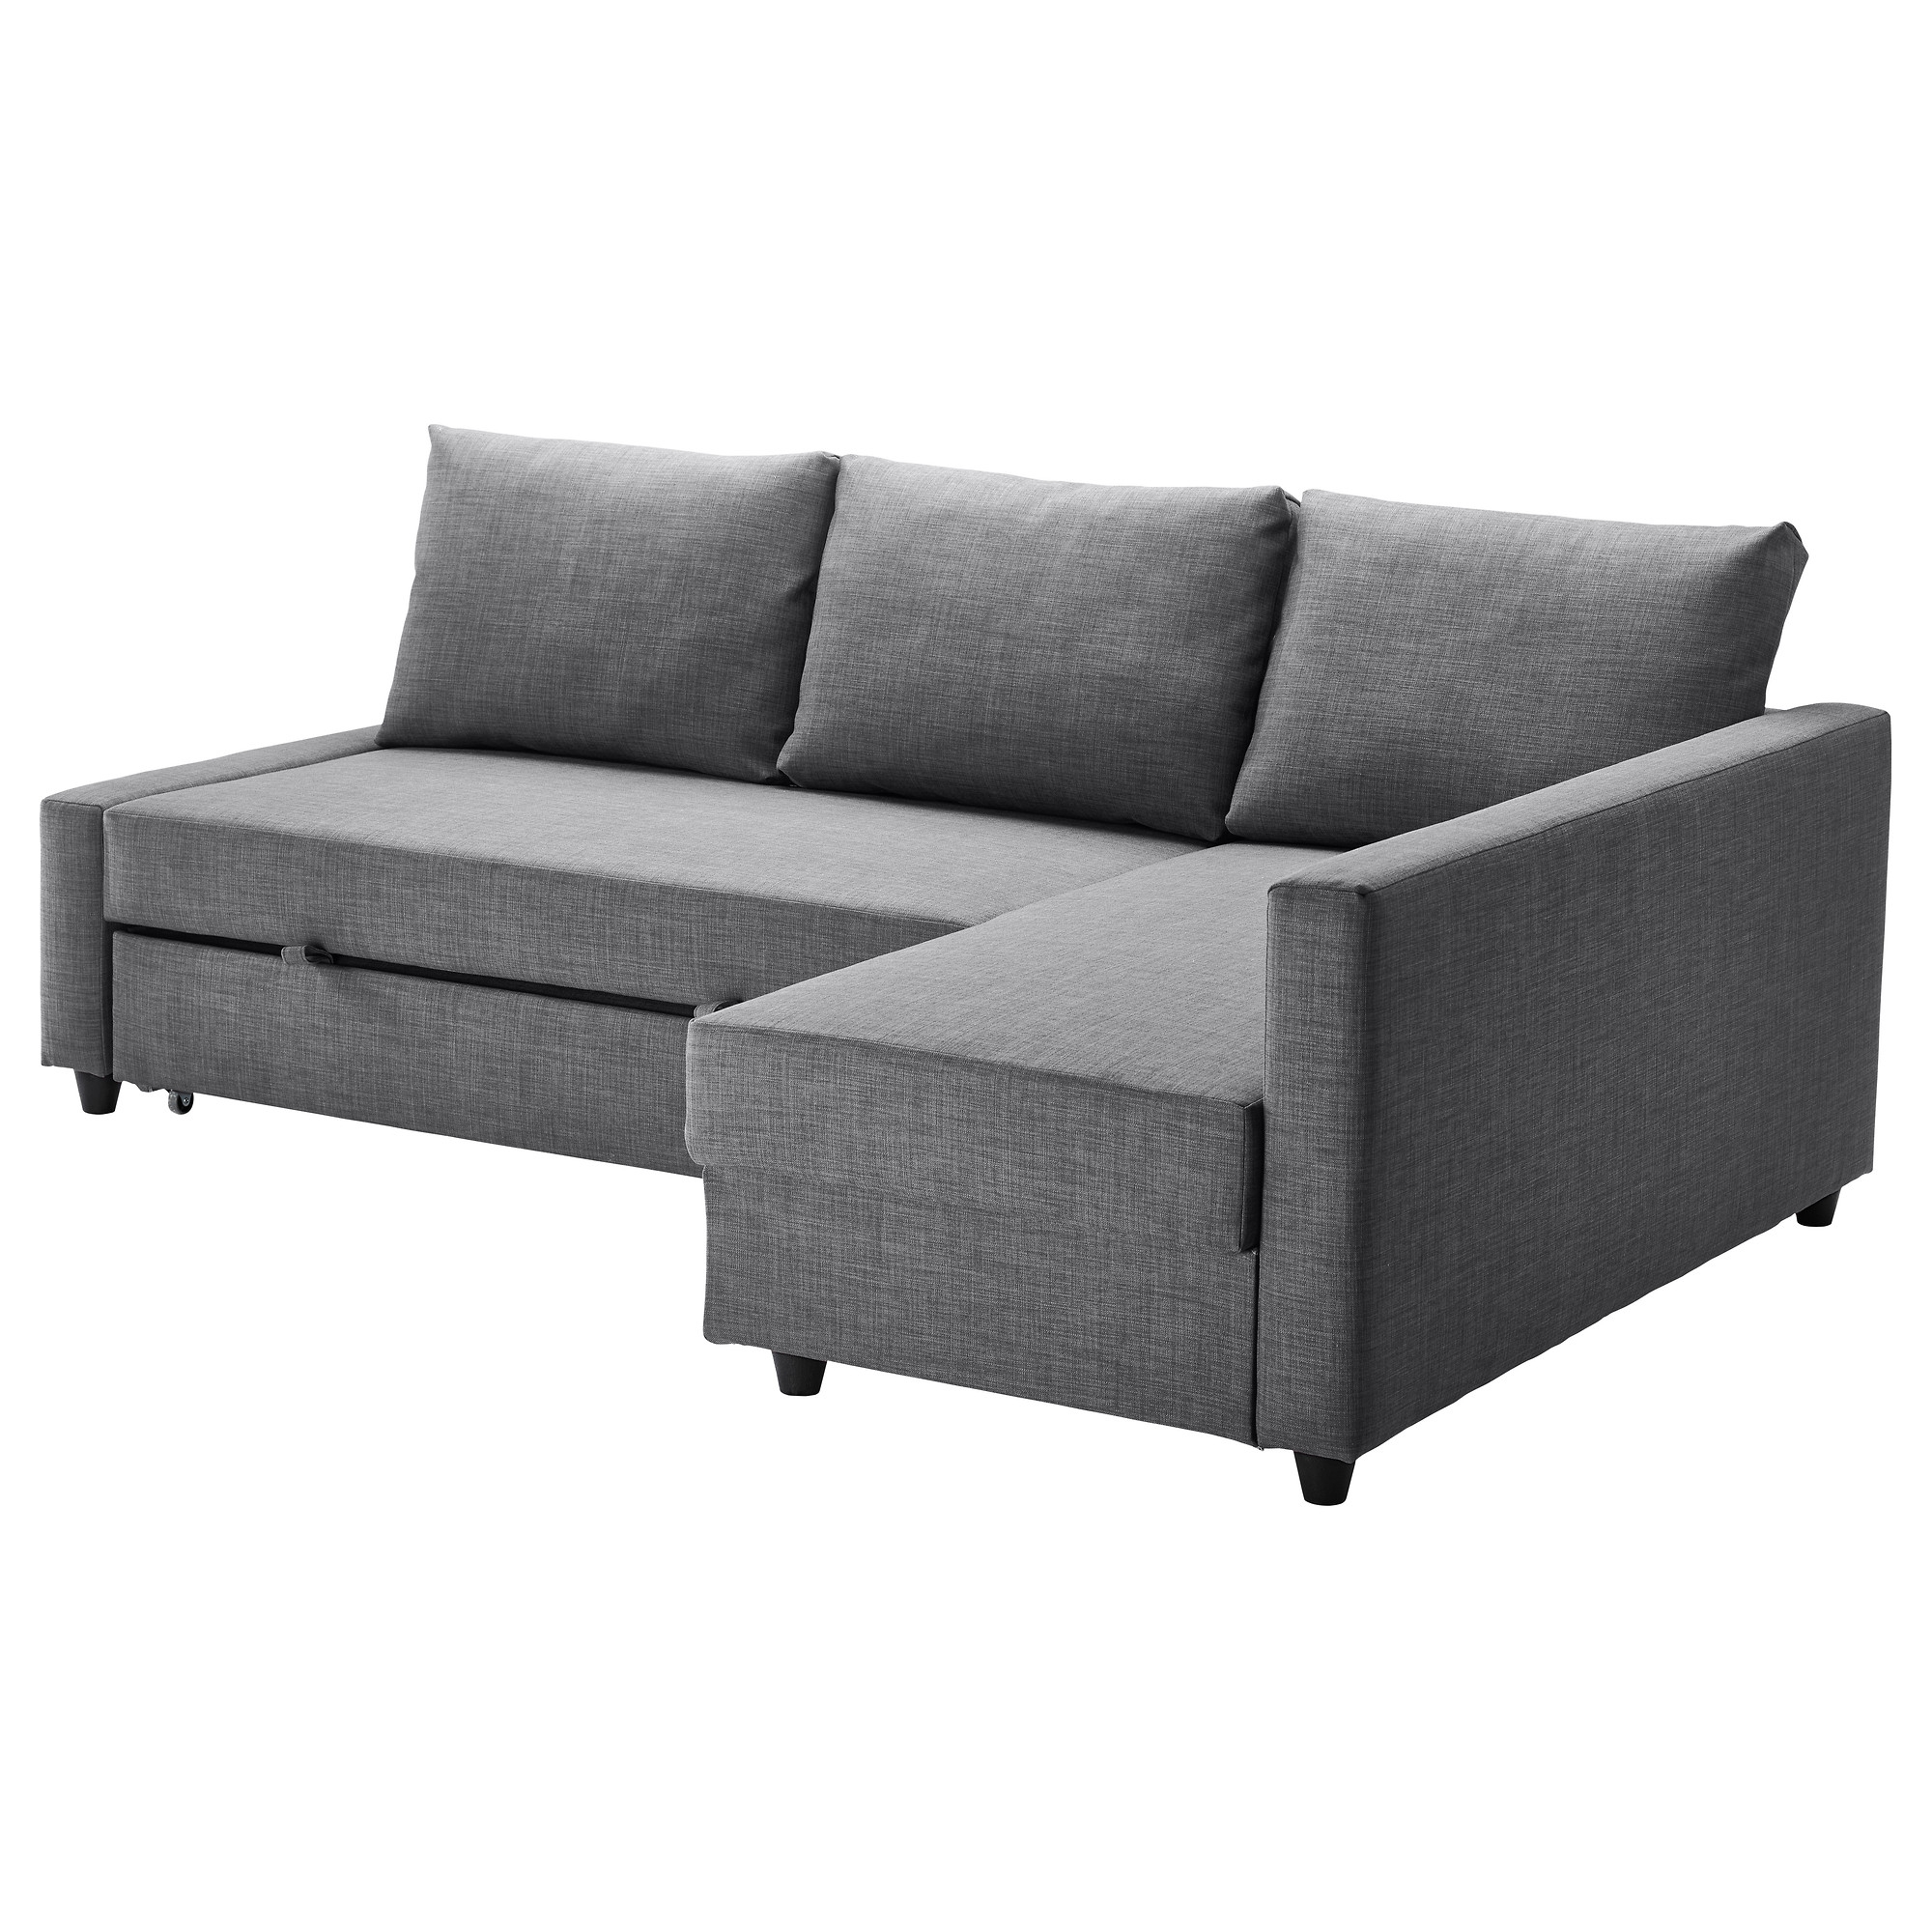 Friheten Corner Sofa Bed With Storage Skiftebo Dark Grey Ikea Regarding Corner Sofa Bed With Storage Ikea (Image 7 of 15)